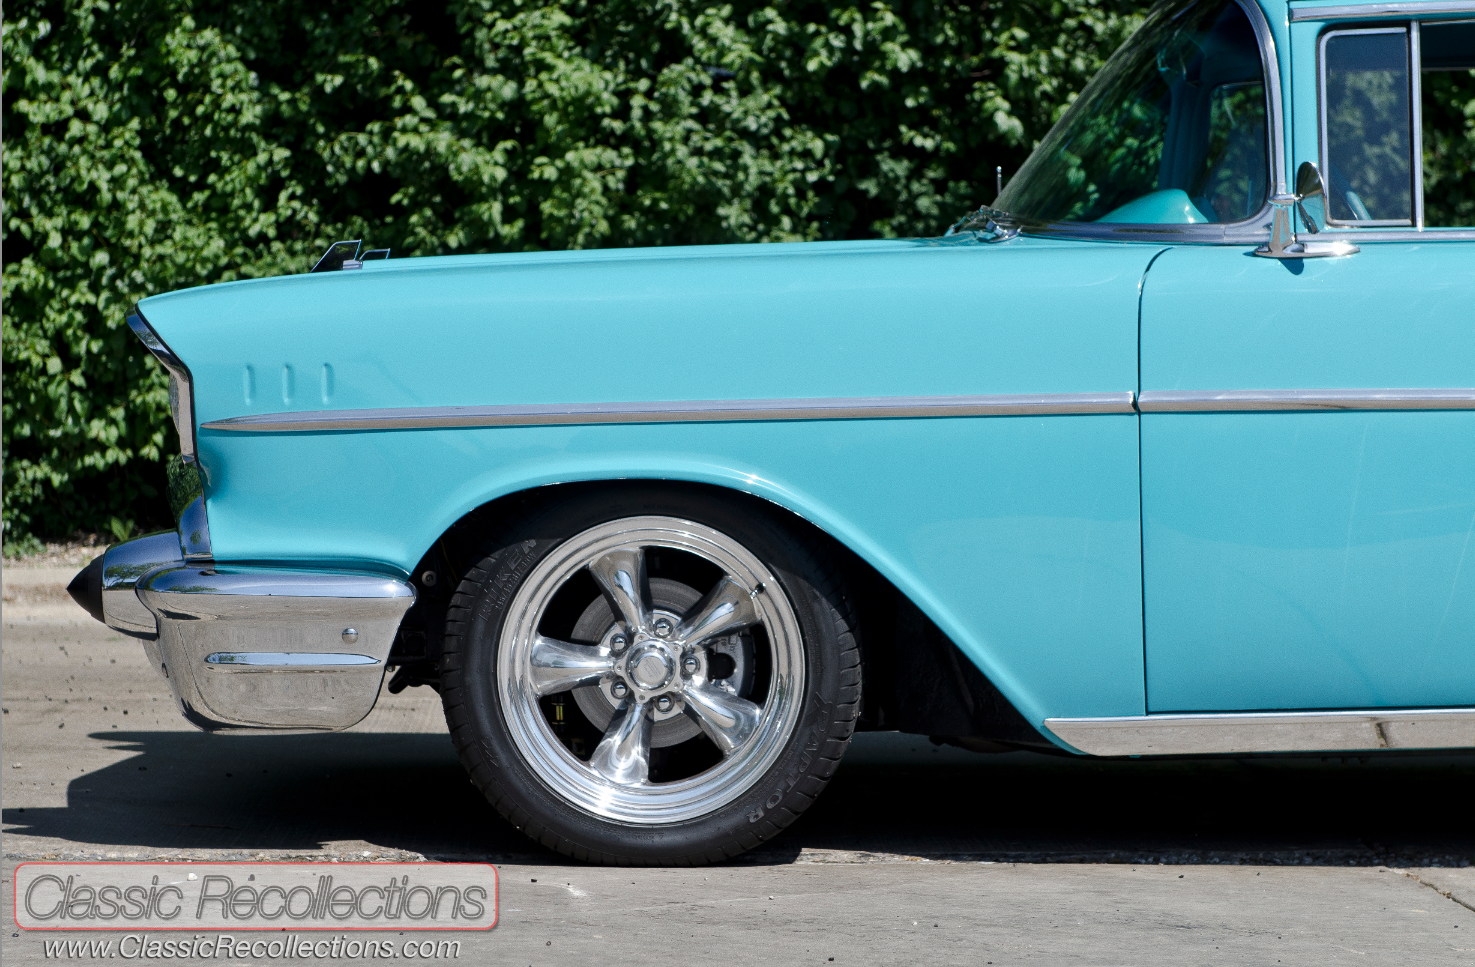 Feature 1957 Chevrolet 210 Wagon Classic Recollections Chevy Station This Owner Wanted A With The Bel Air Trim